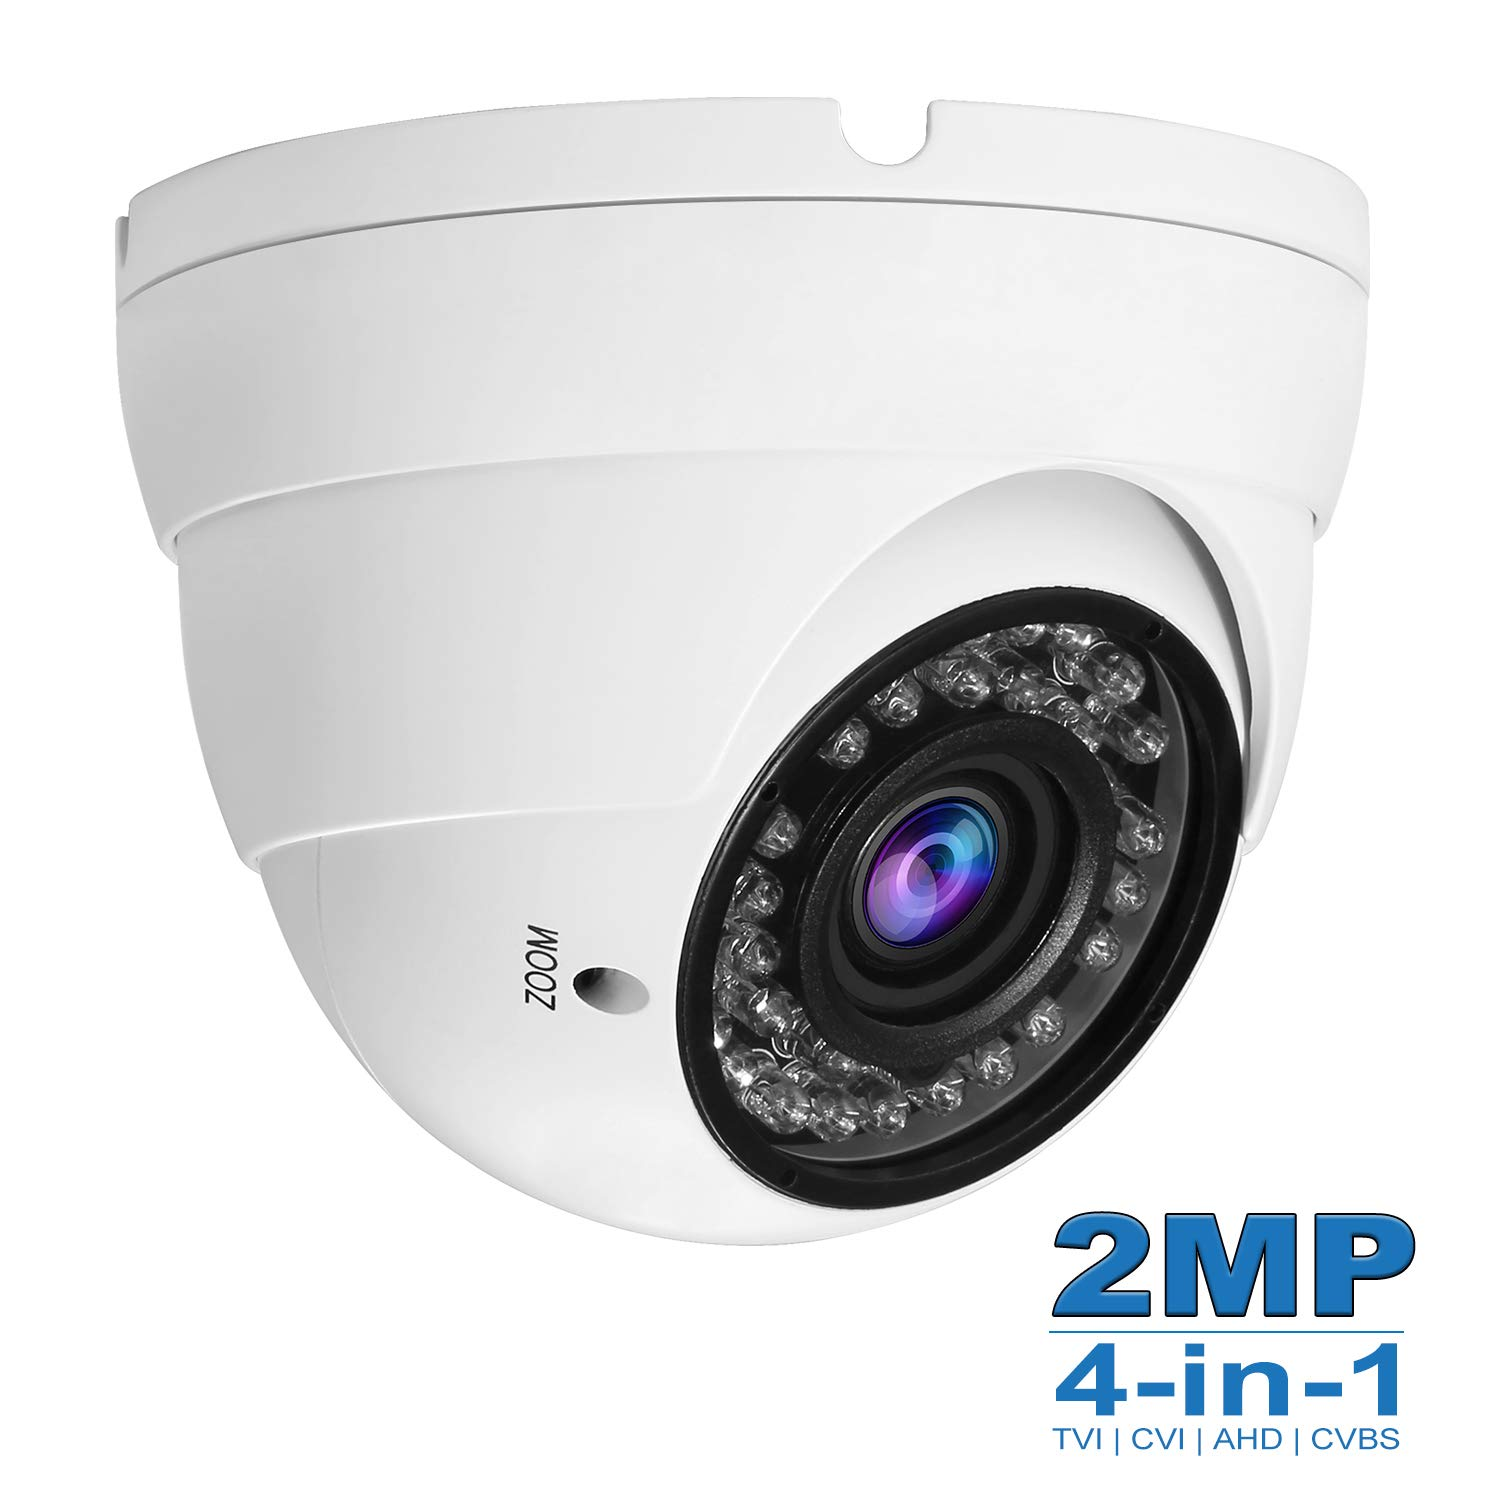 Anpviz Security Varifocal Surveillance Waterproof